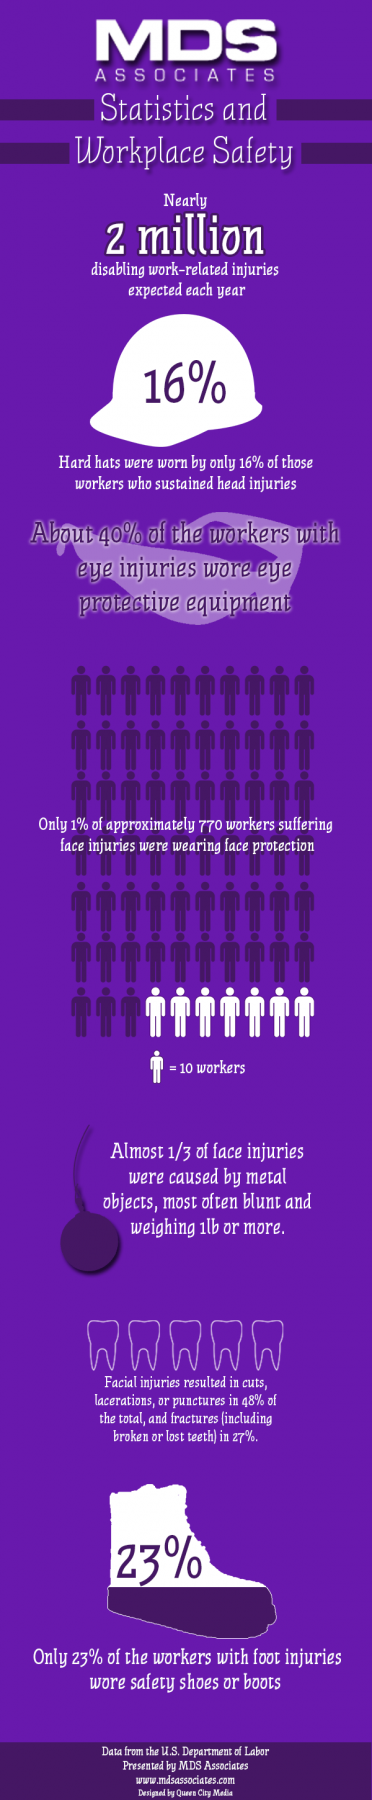 Workplace Safety Statistics [infographic] - MDS Associates, Inc.